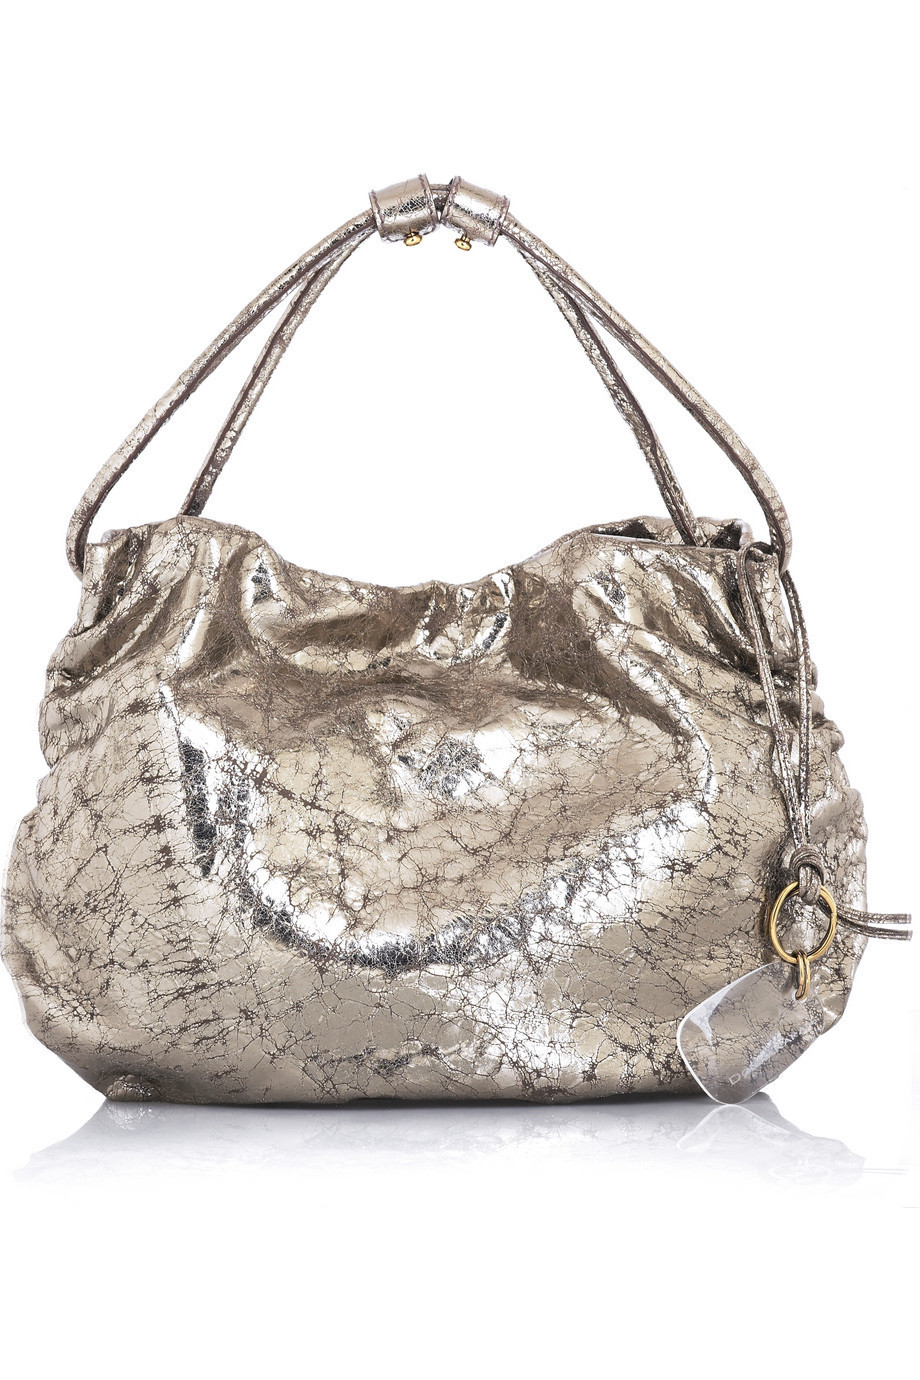 Donna Karan Metallic leather hobo | NET-A-PORTER.COM from net-a-porter.com